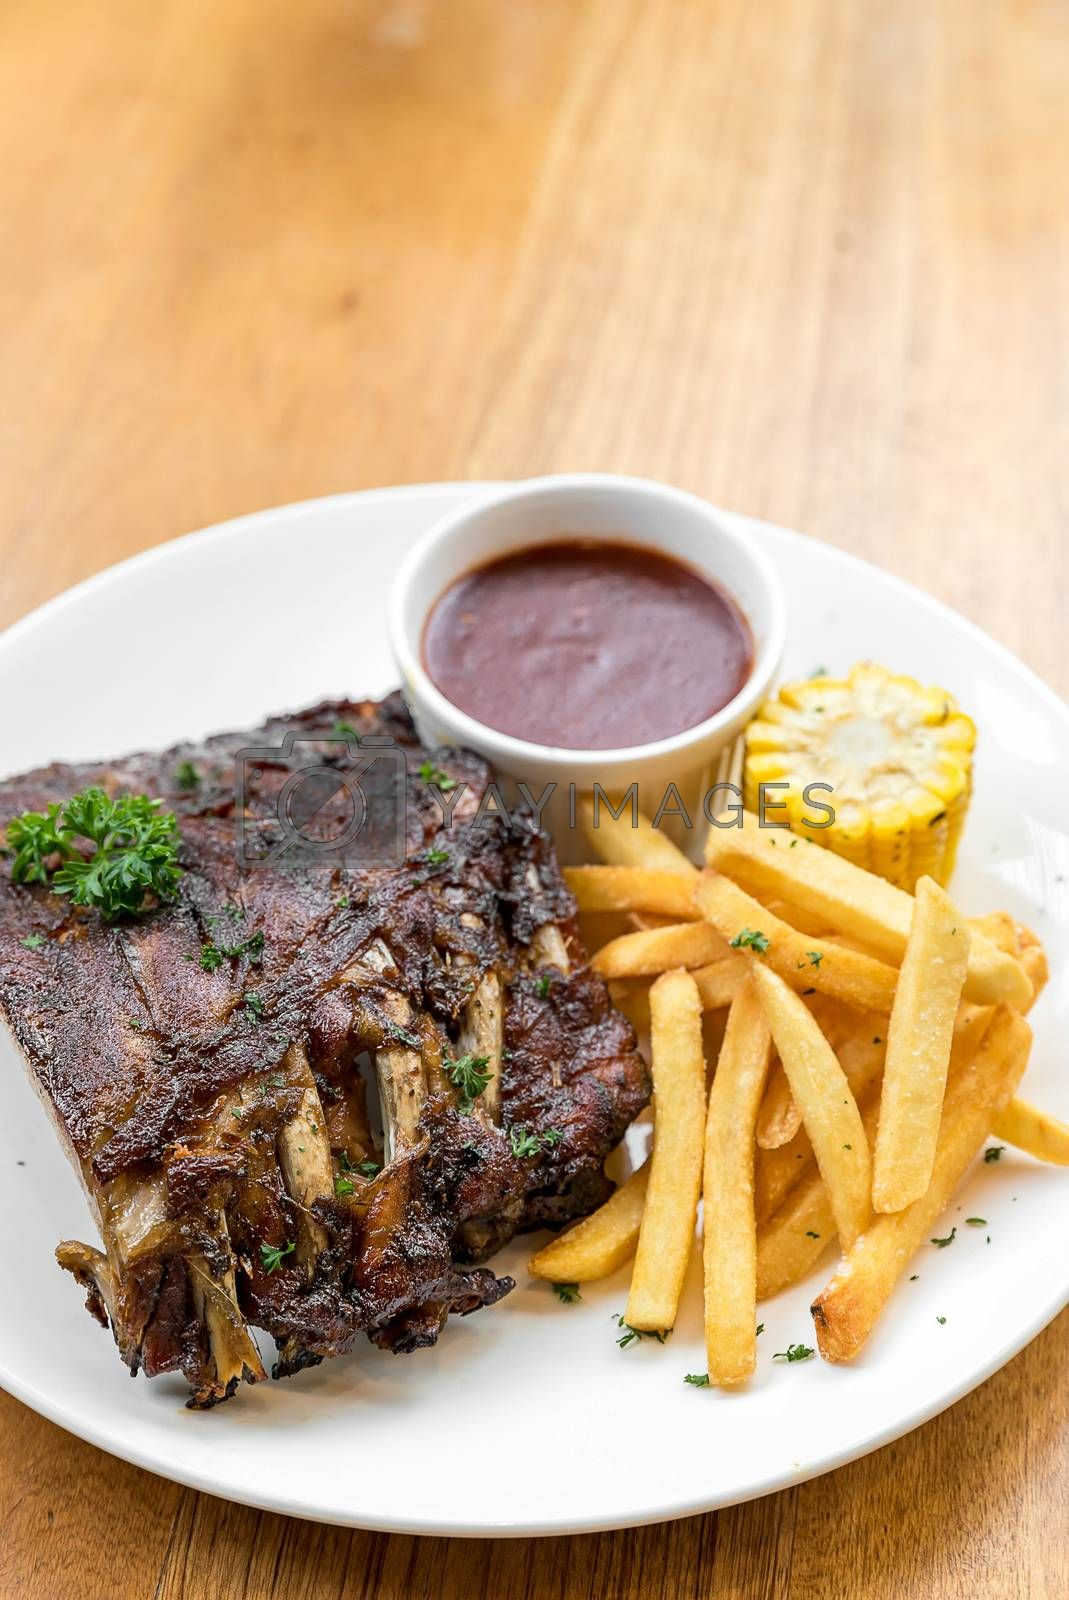 Grilled Barbecued Pork Baby Back Ribs with grilled sweet corn and fries